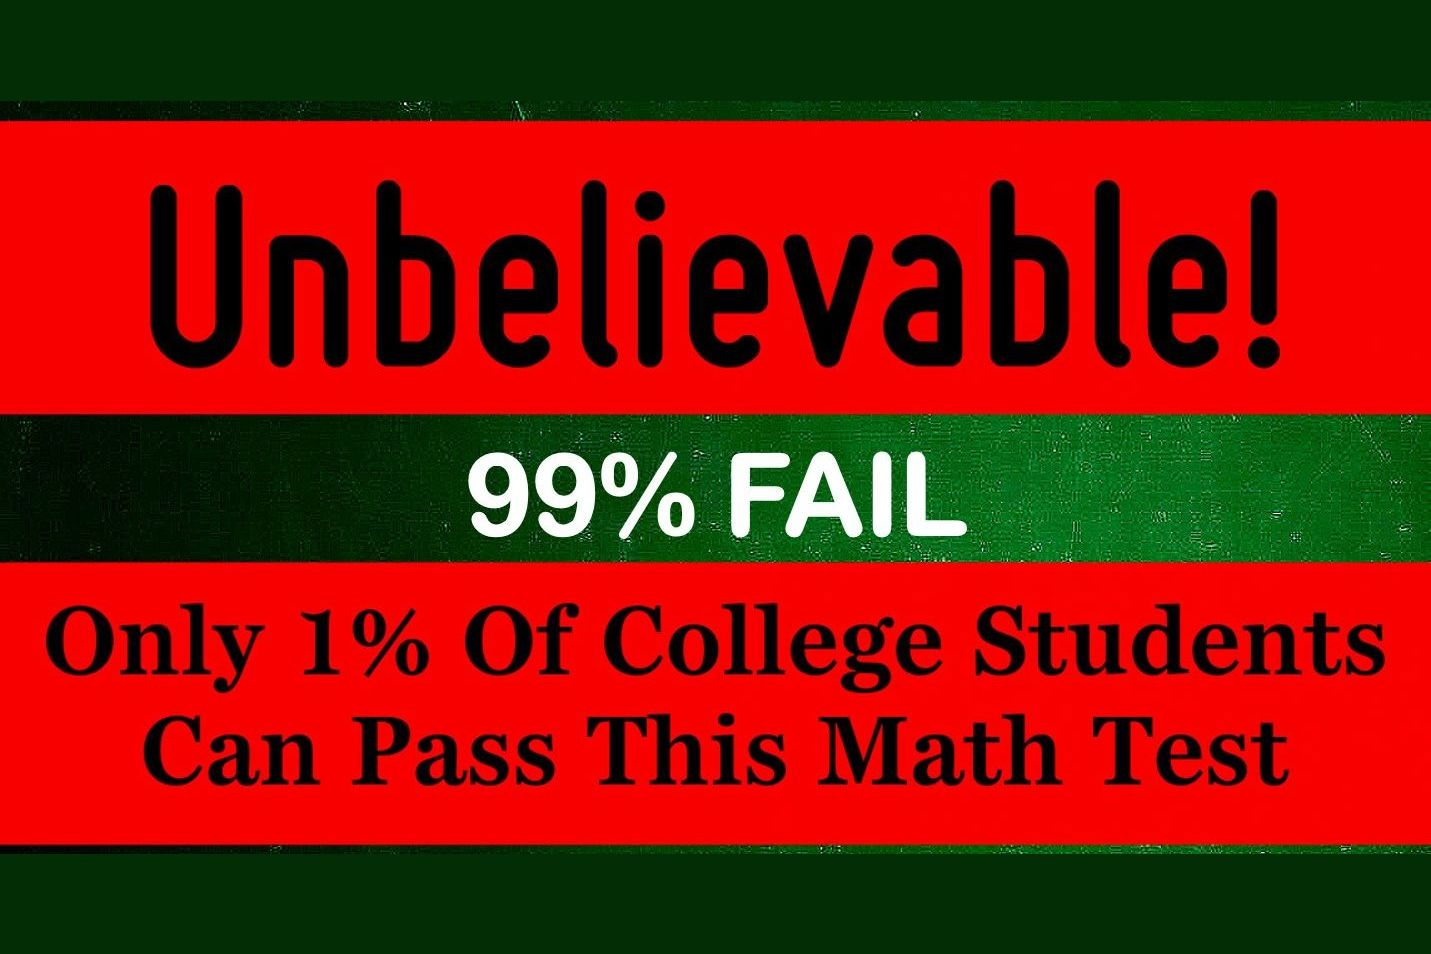 Unbelievable! 99% Of College Students Fail This Math Test